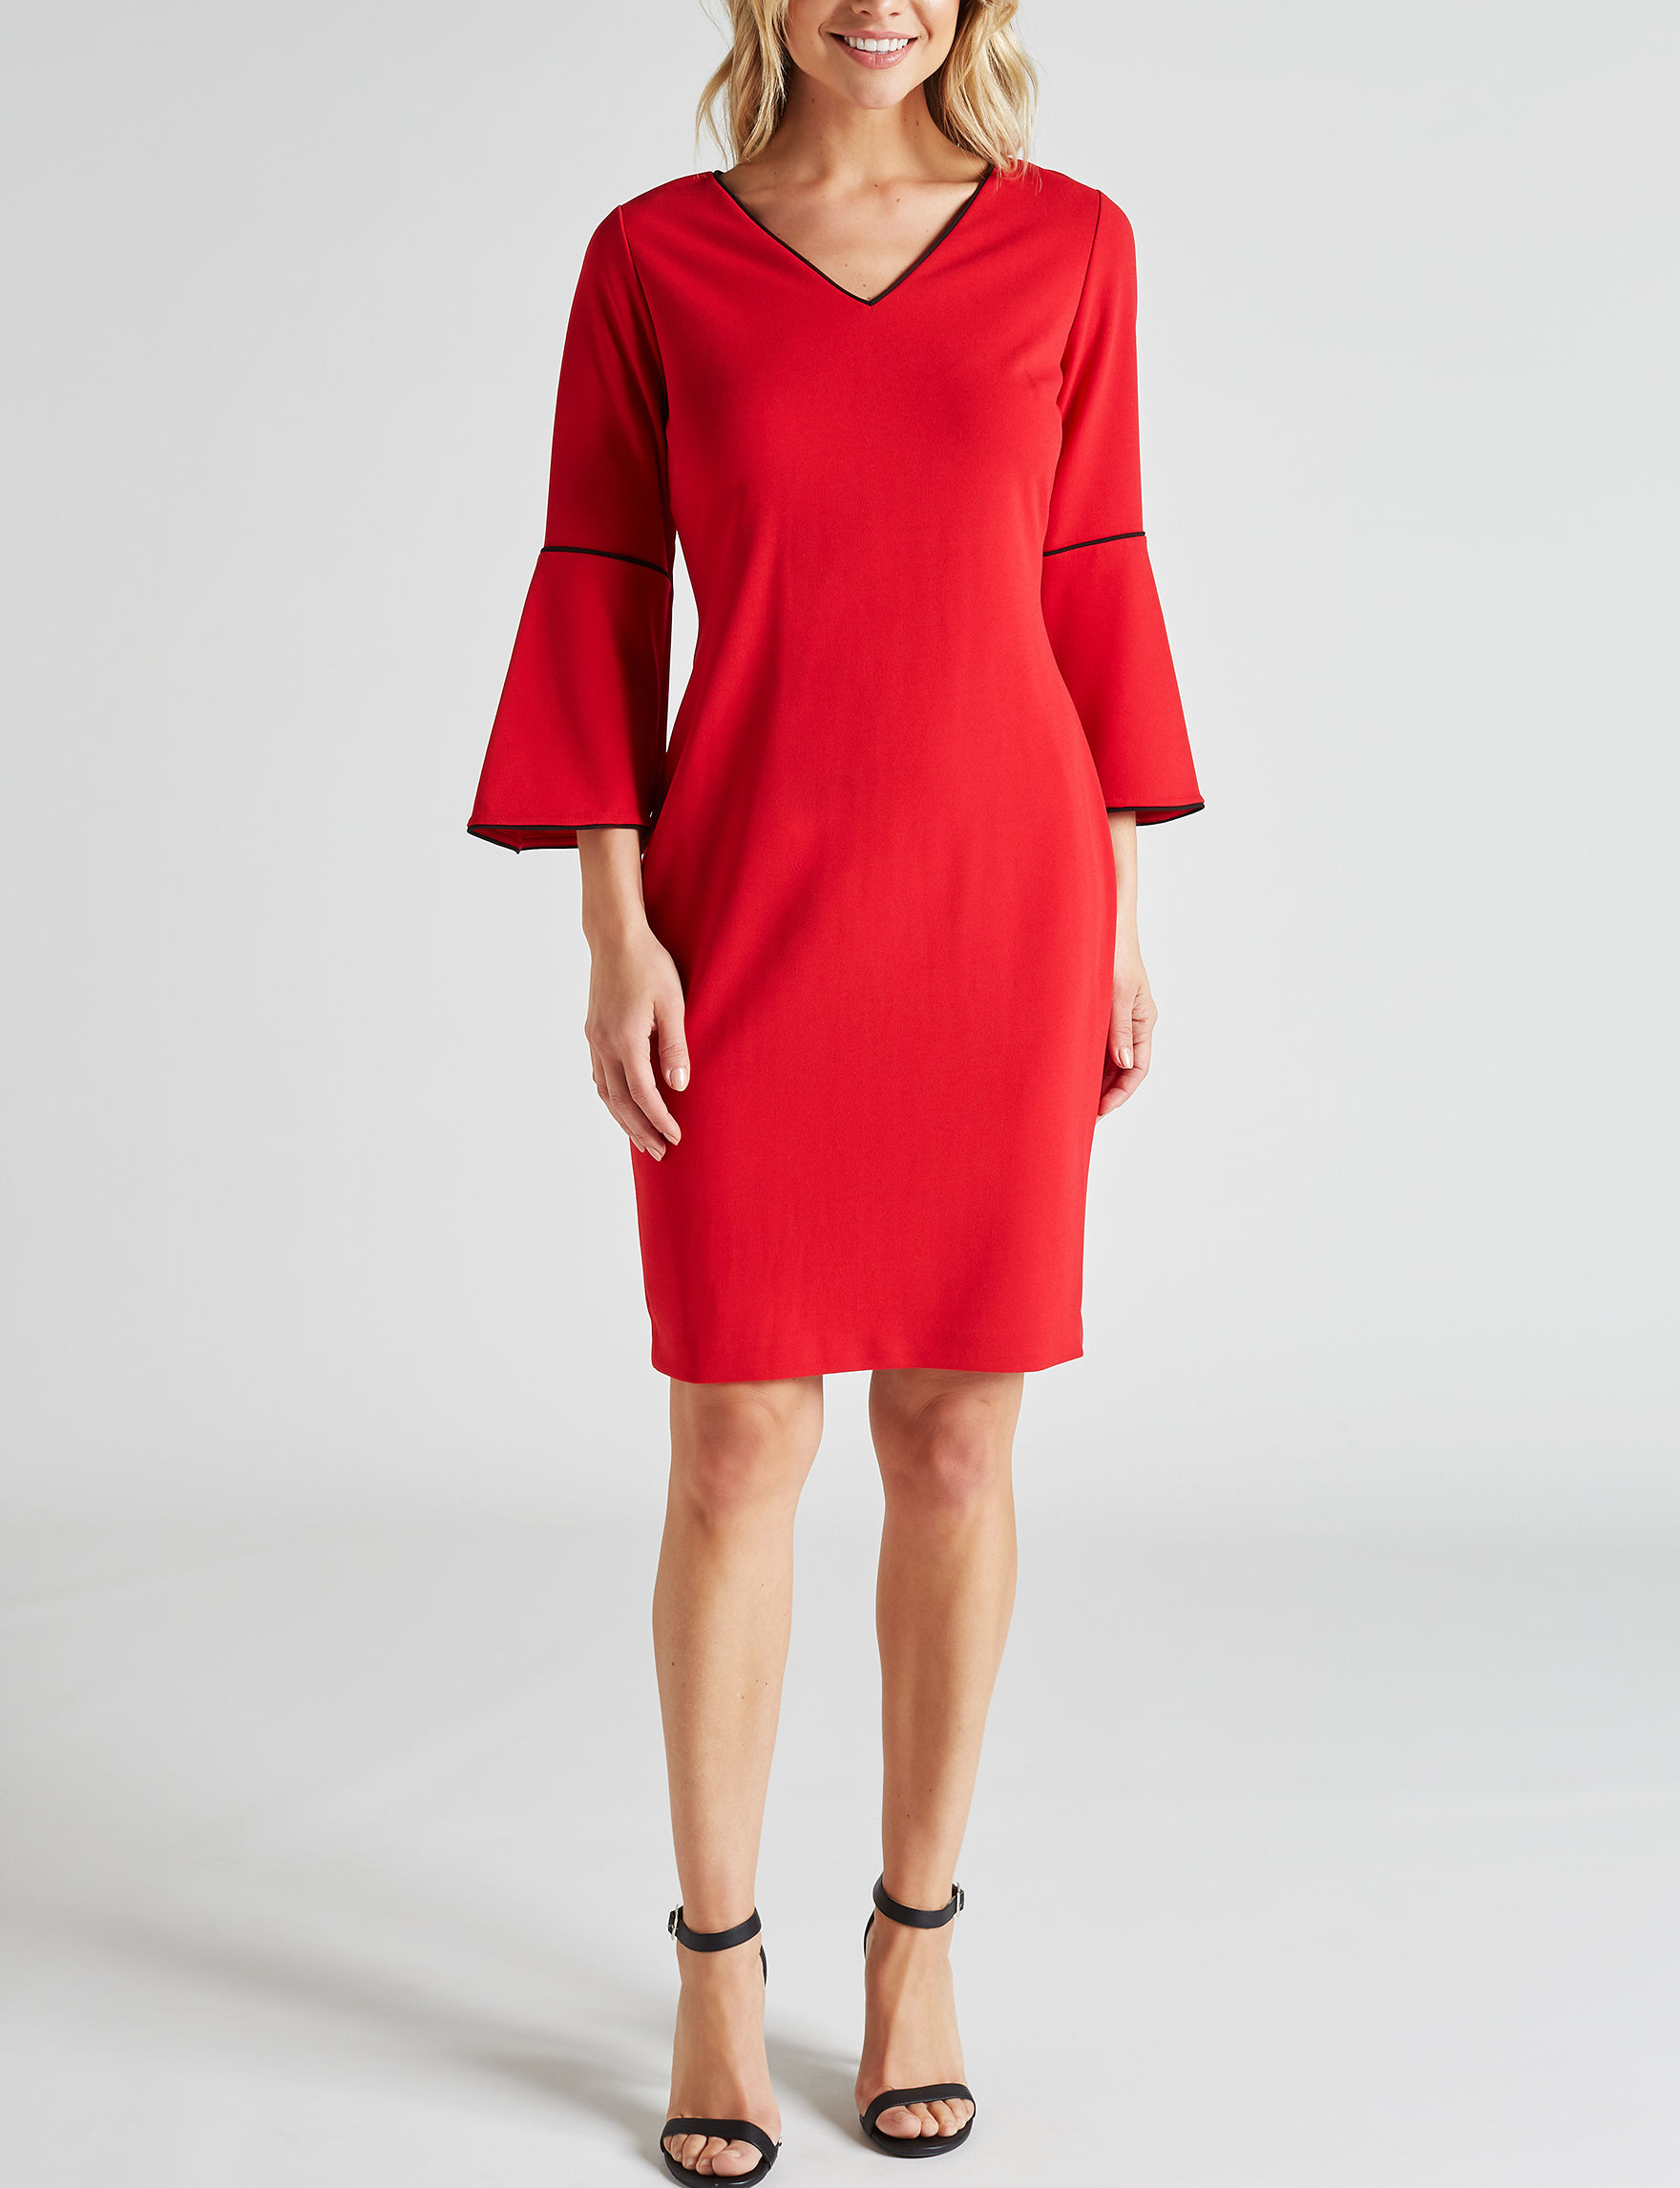 Calvin Klein Red Everyday & Casual Shift Dresses